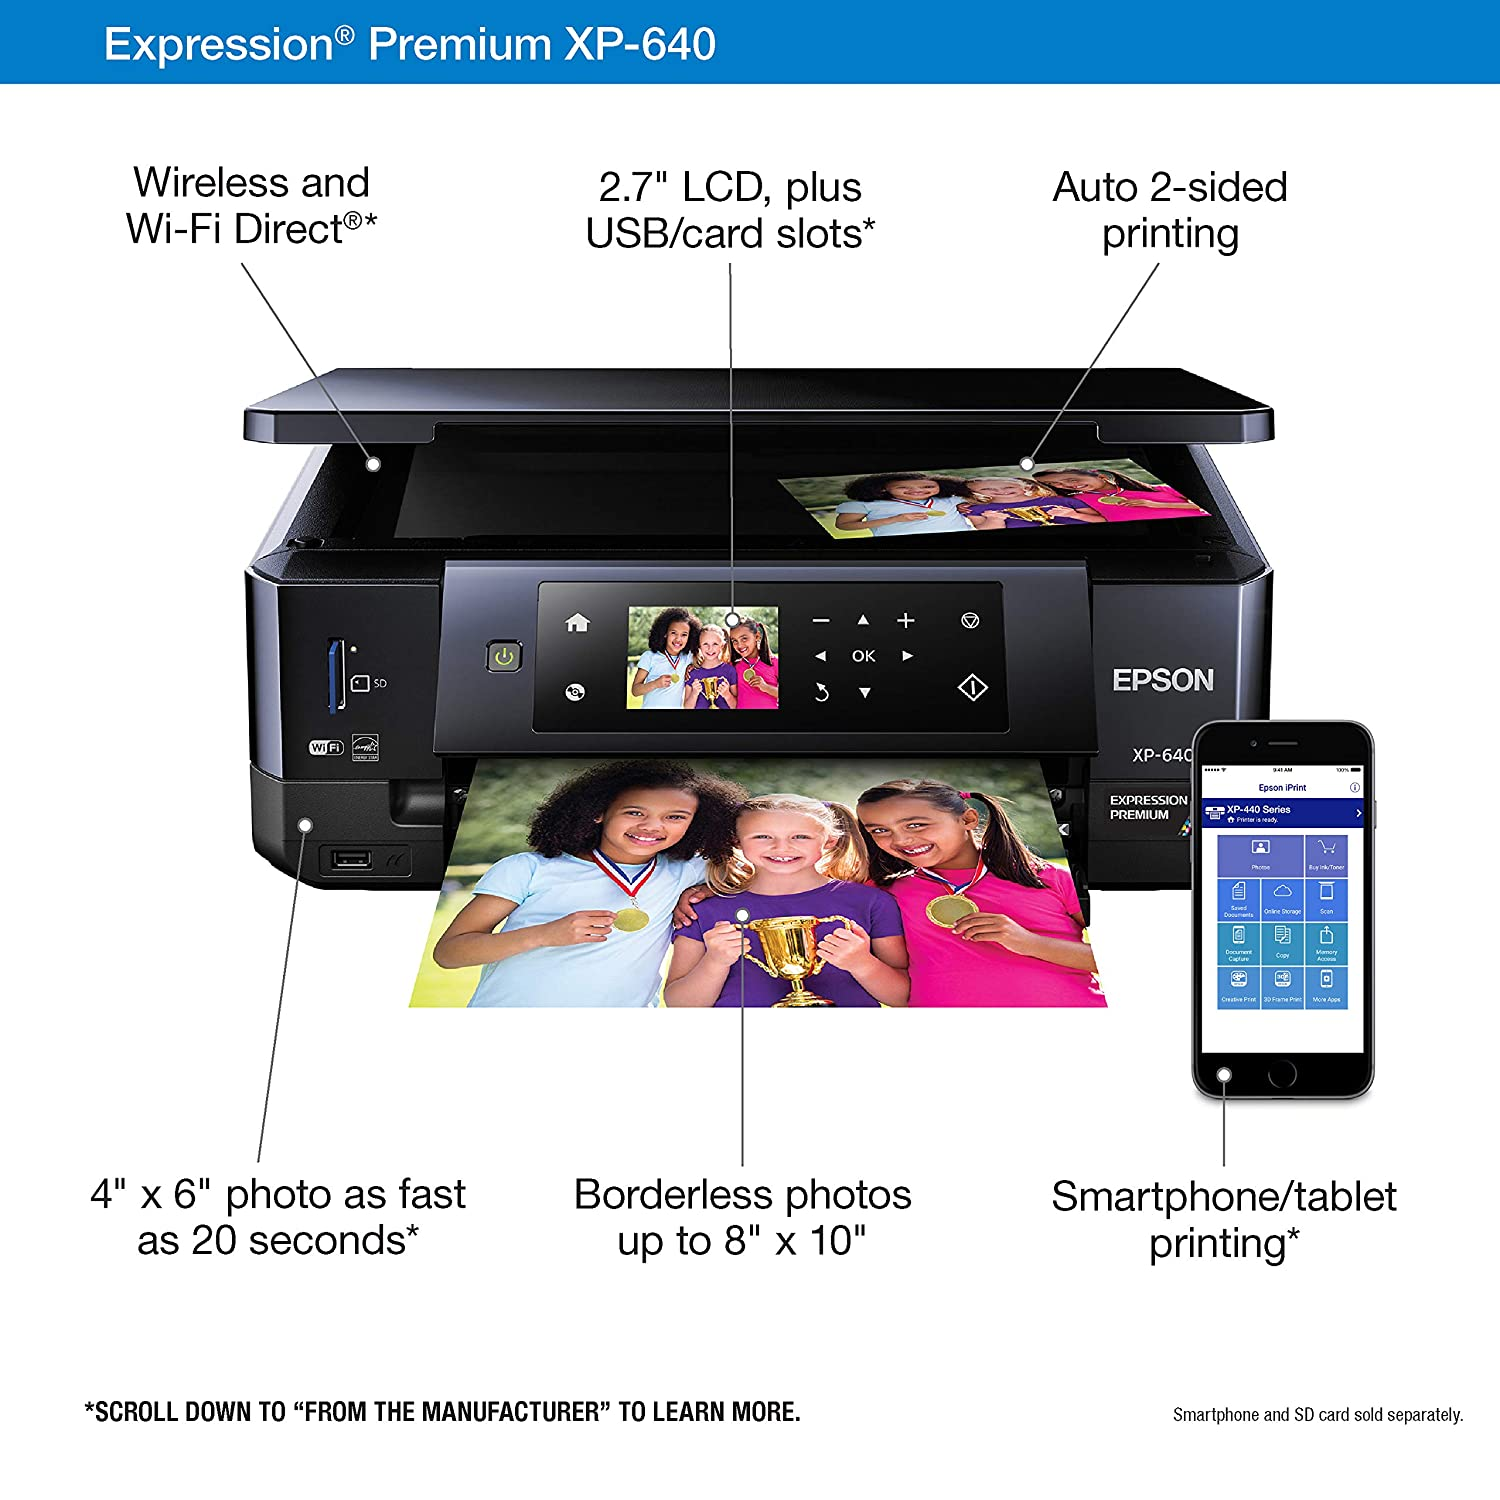 Amazon.com: Epson XP-640 Expression Premium Wireless Color ...